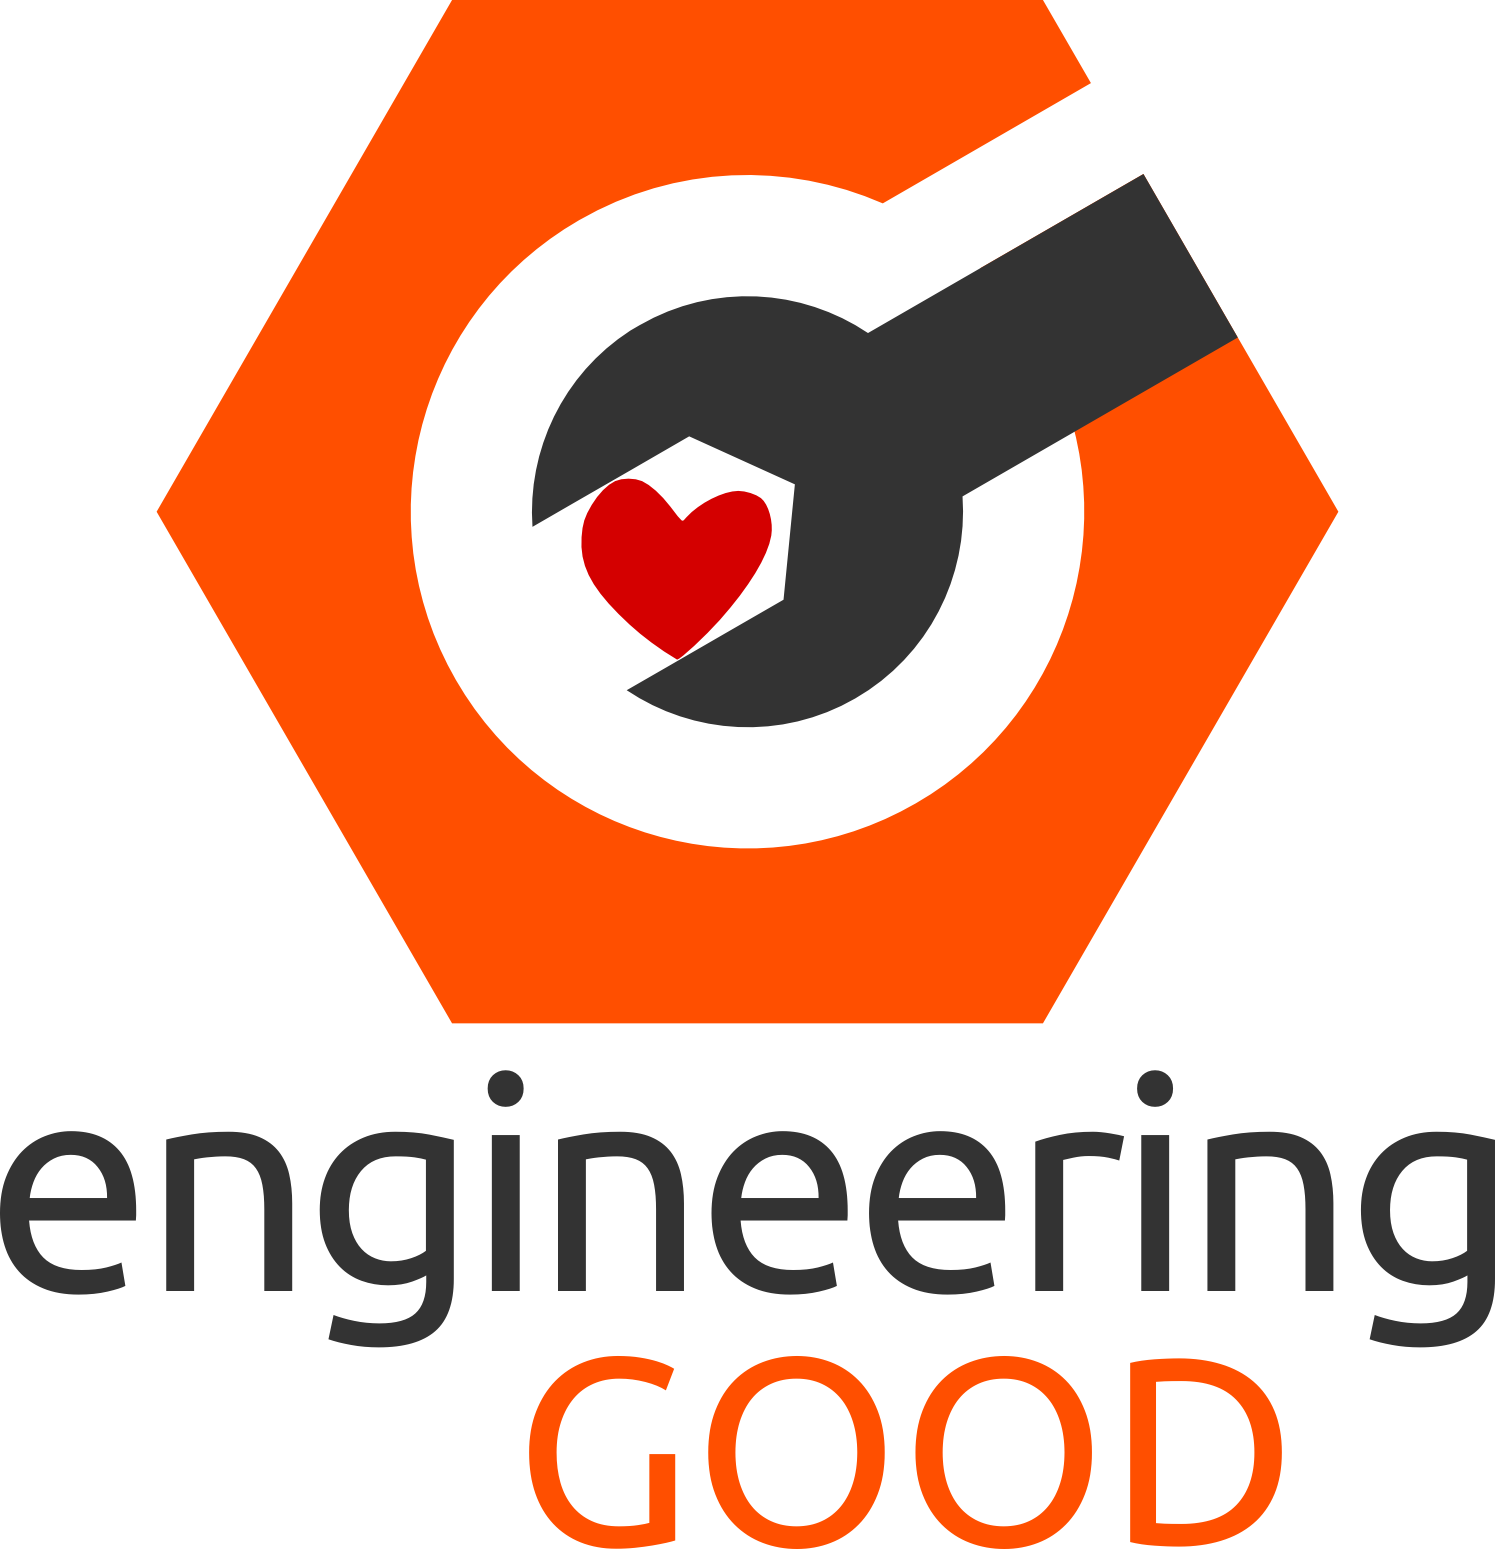 Engineering Good Ltd